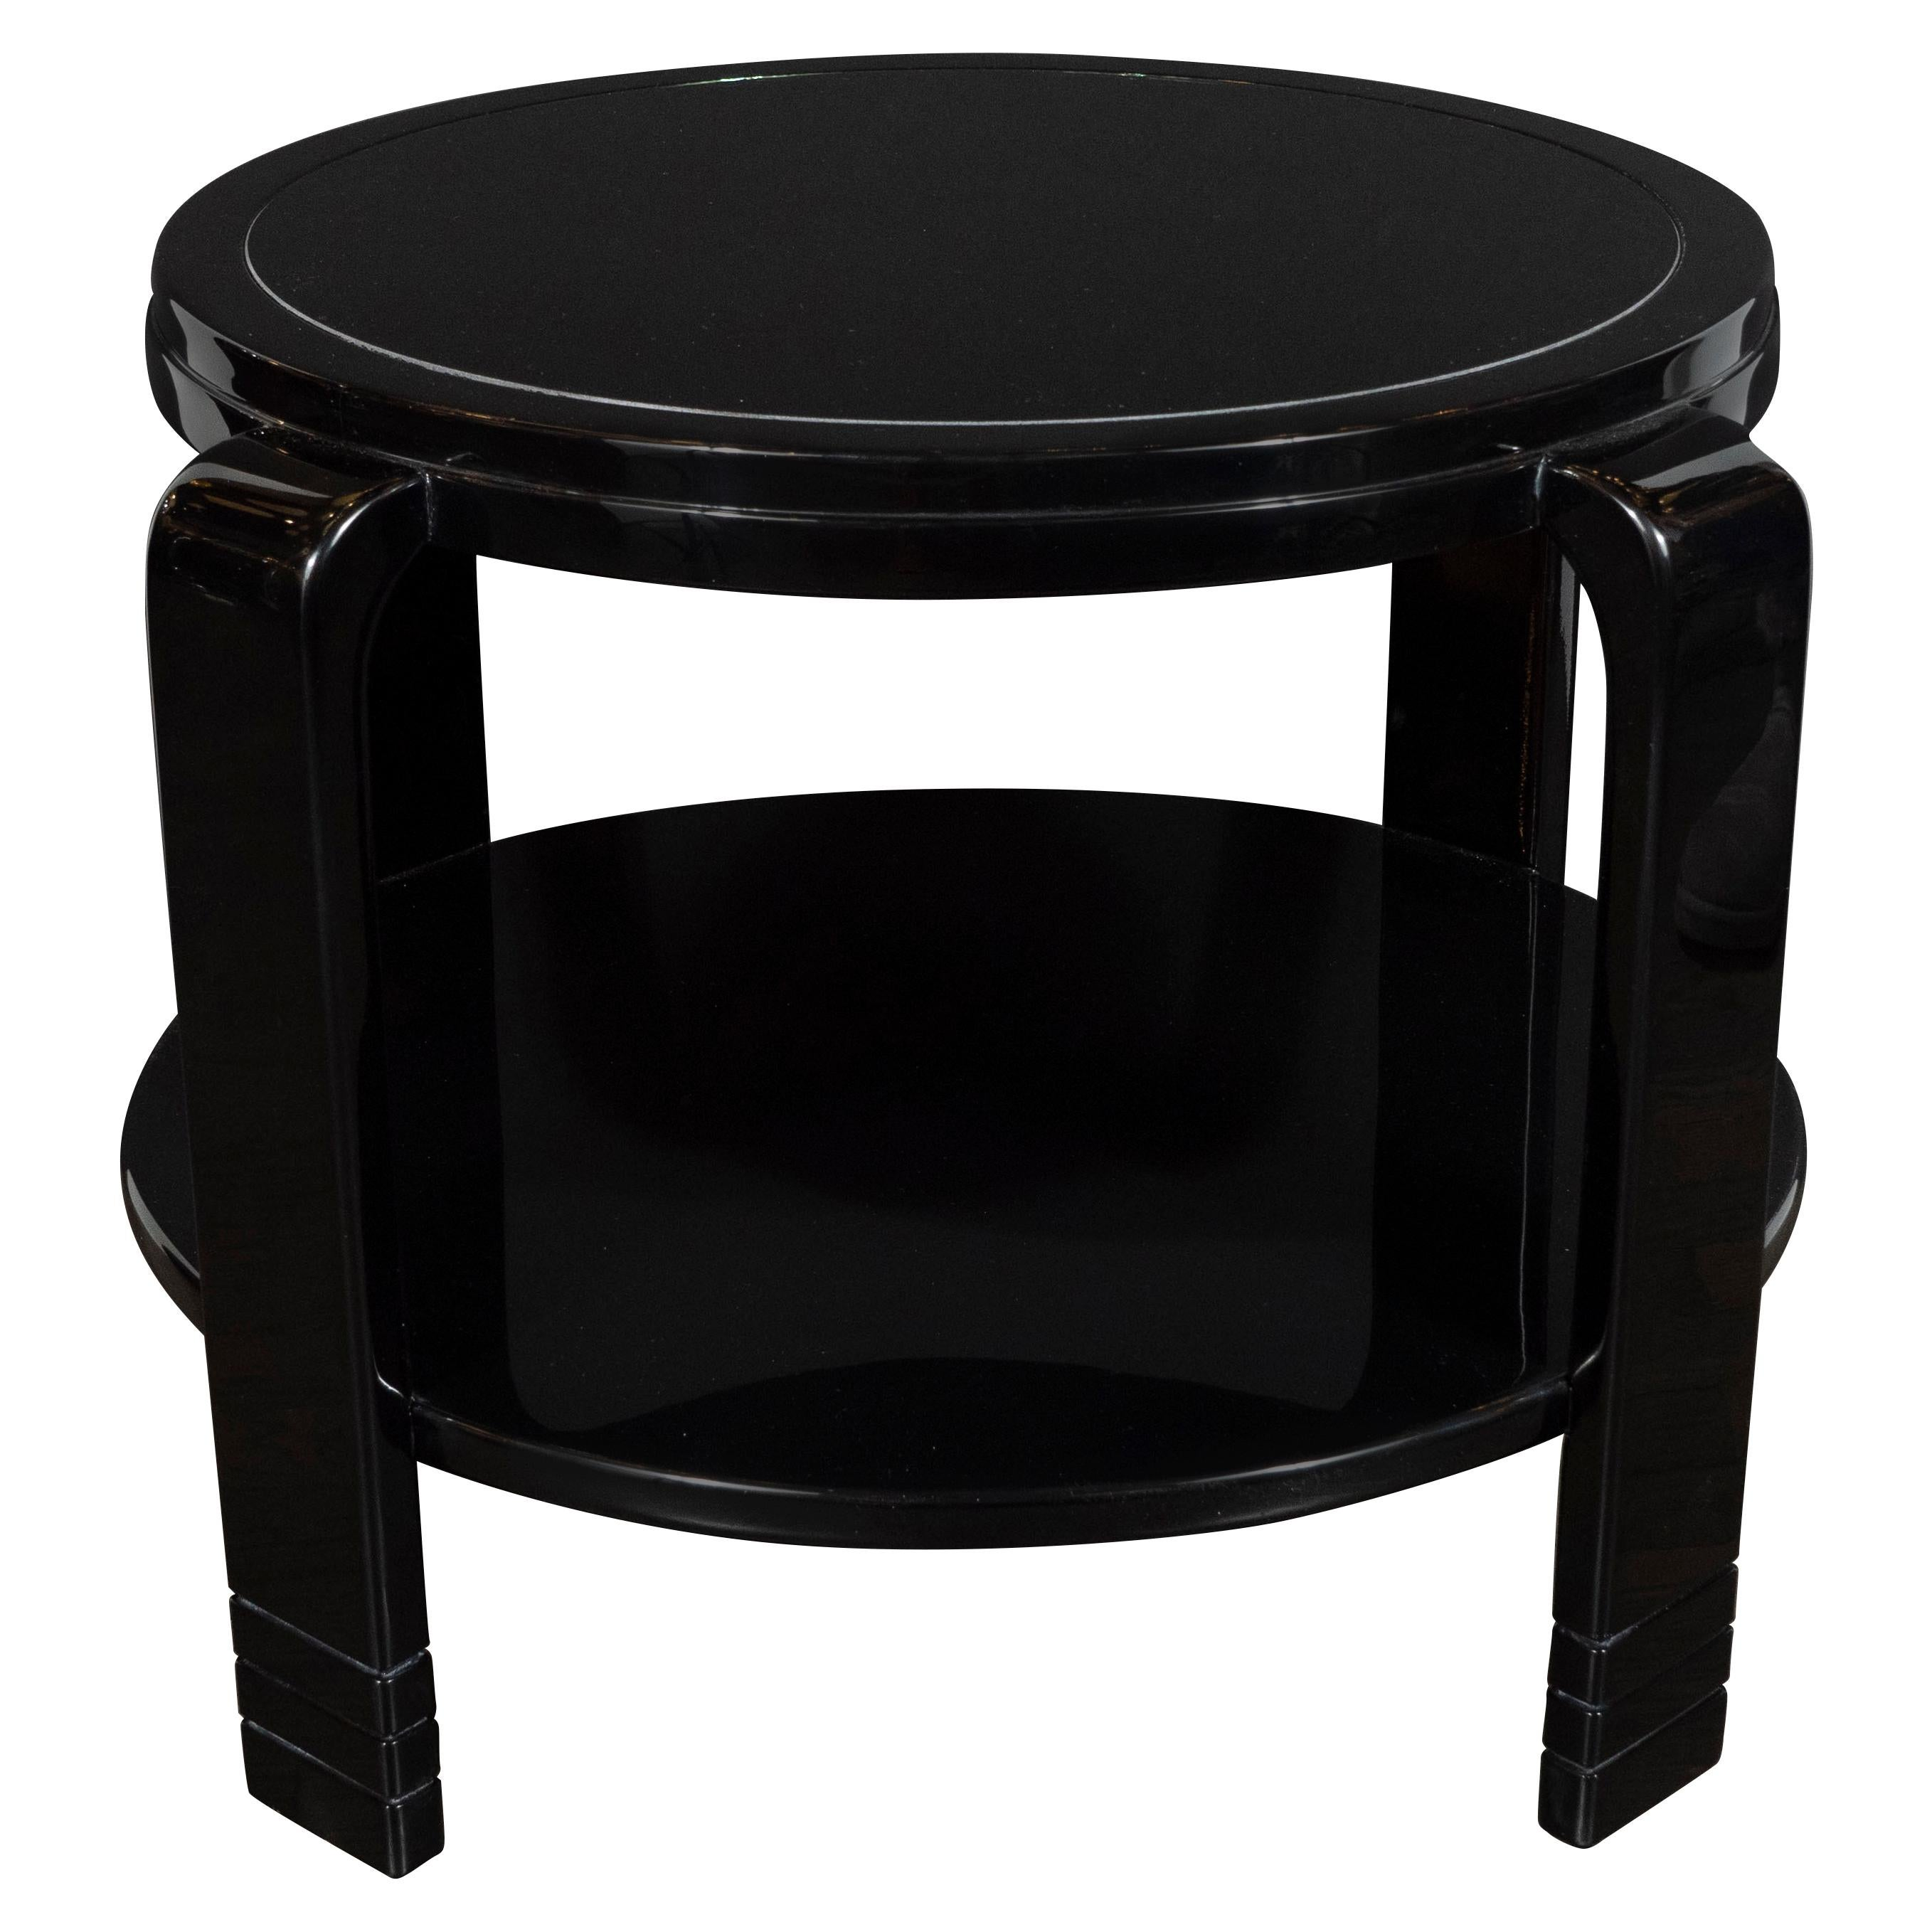 Art Deco Machine Age Streamlined Two-Tier Black Lacquer and Vitrolite Side Table